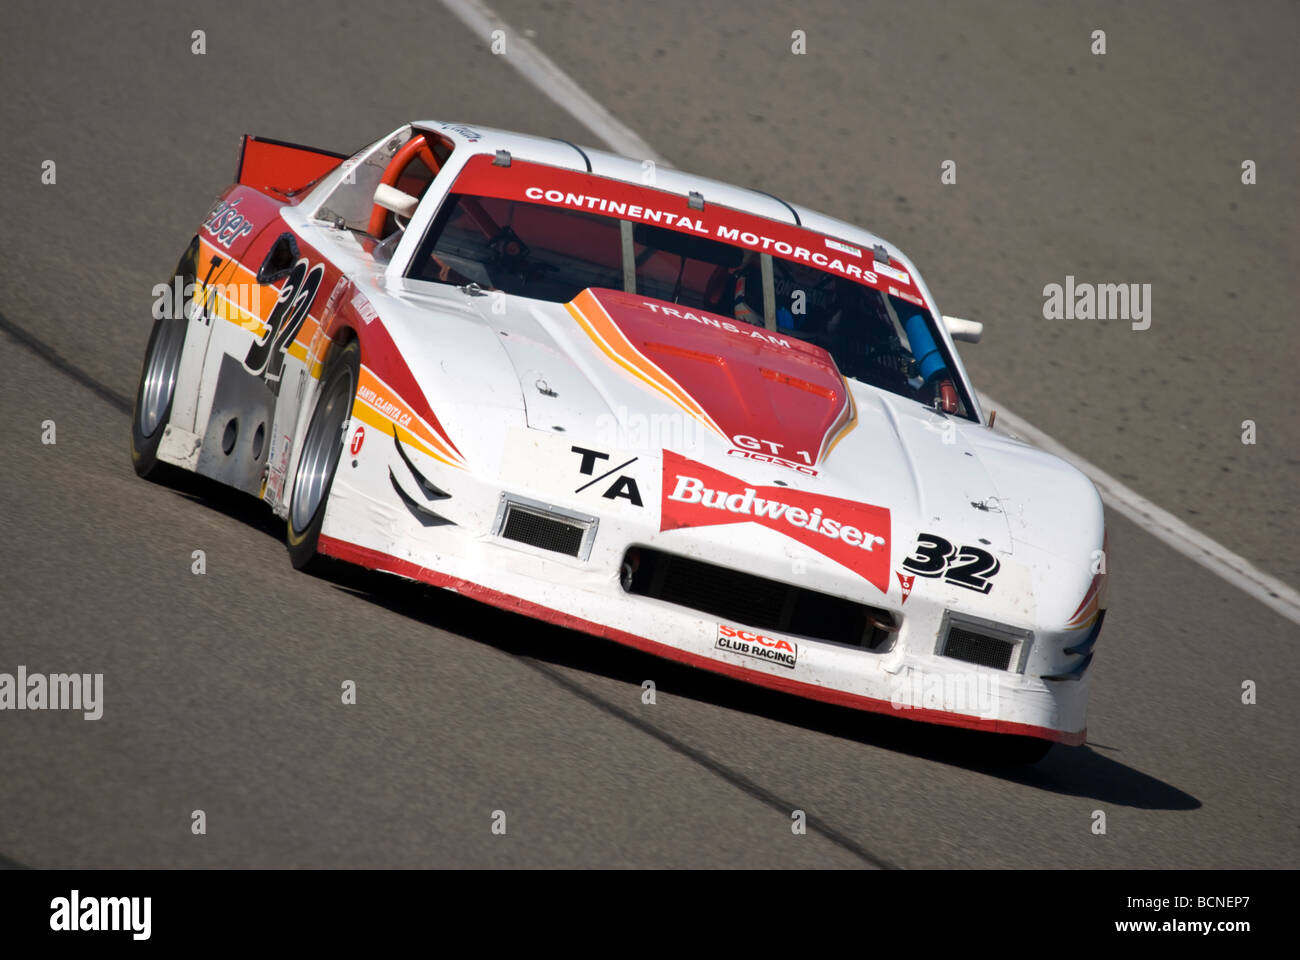 A 1986 Chevy Camaro GT-6 TransAm car at a vintage racing event Stock ...